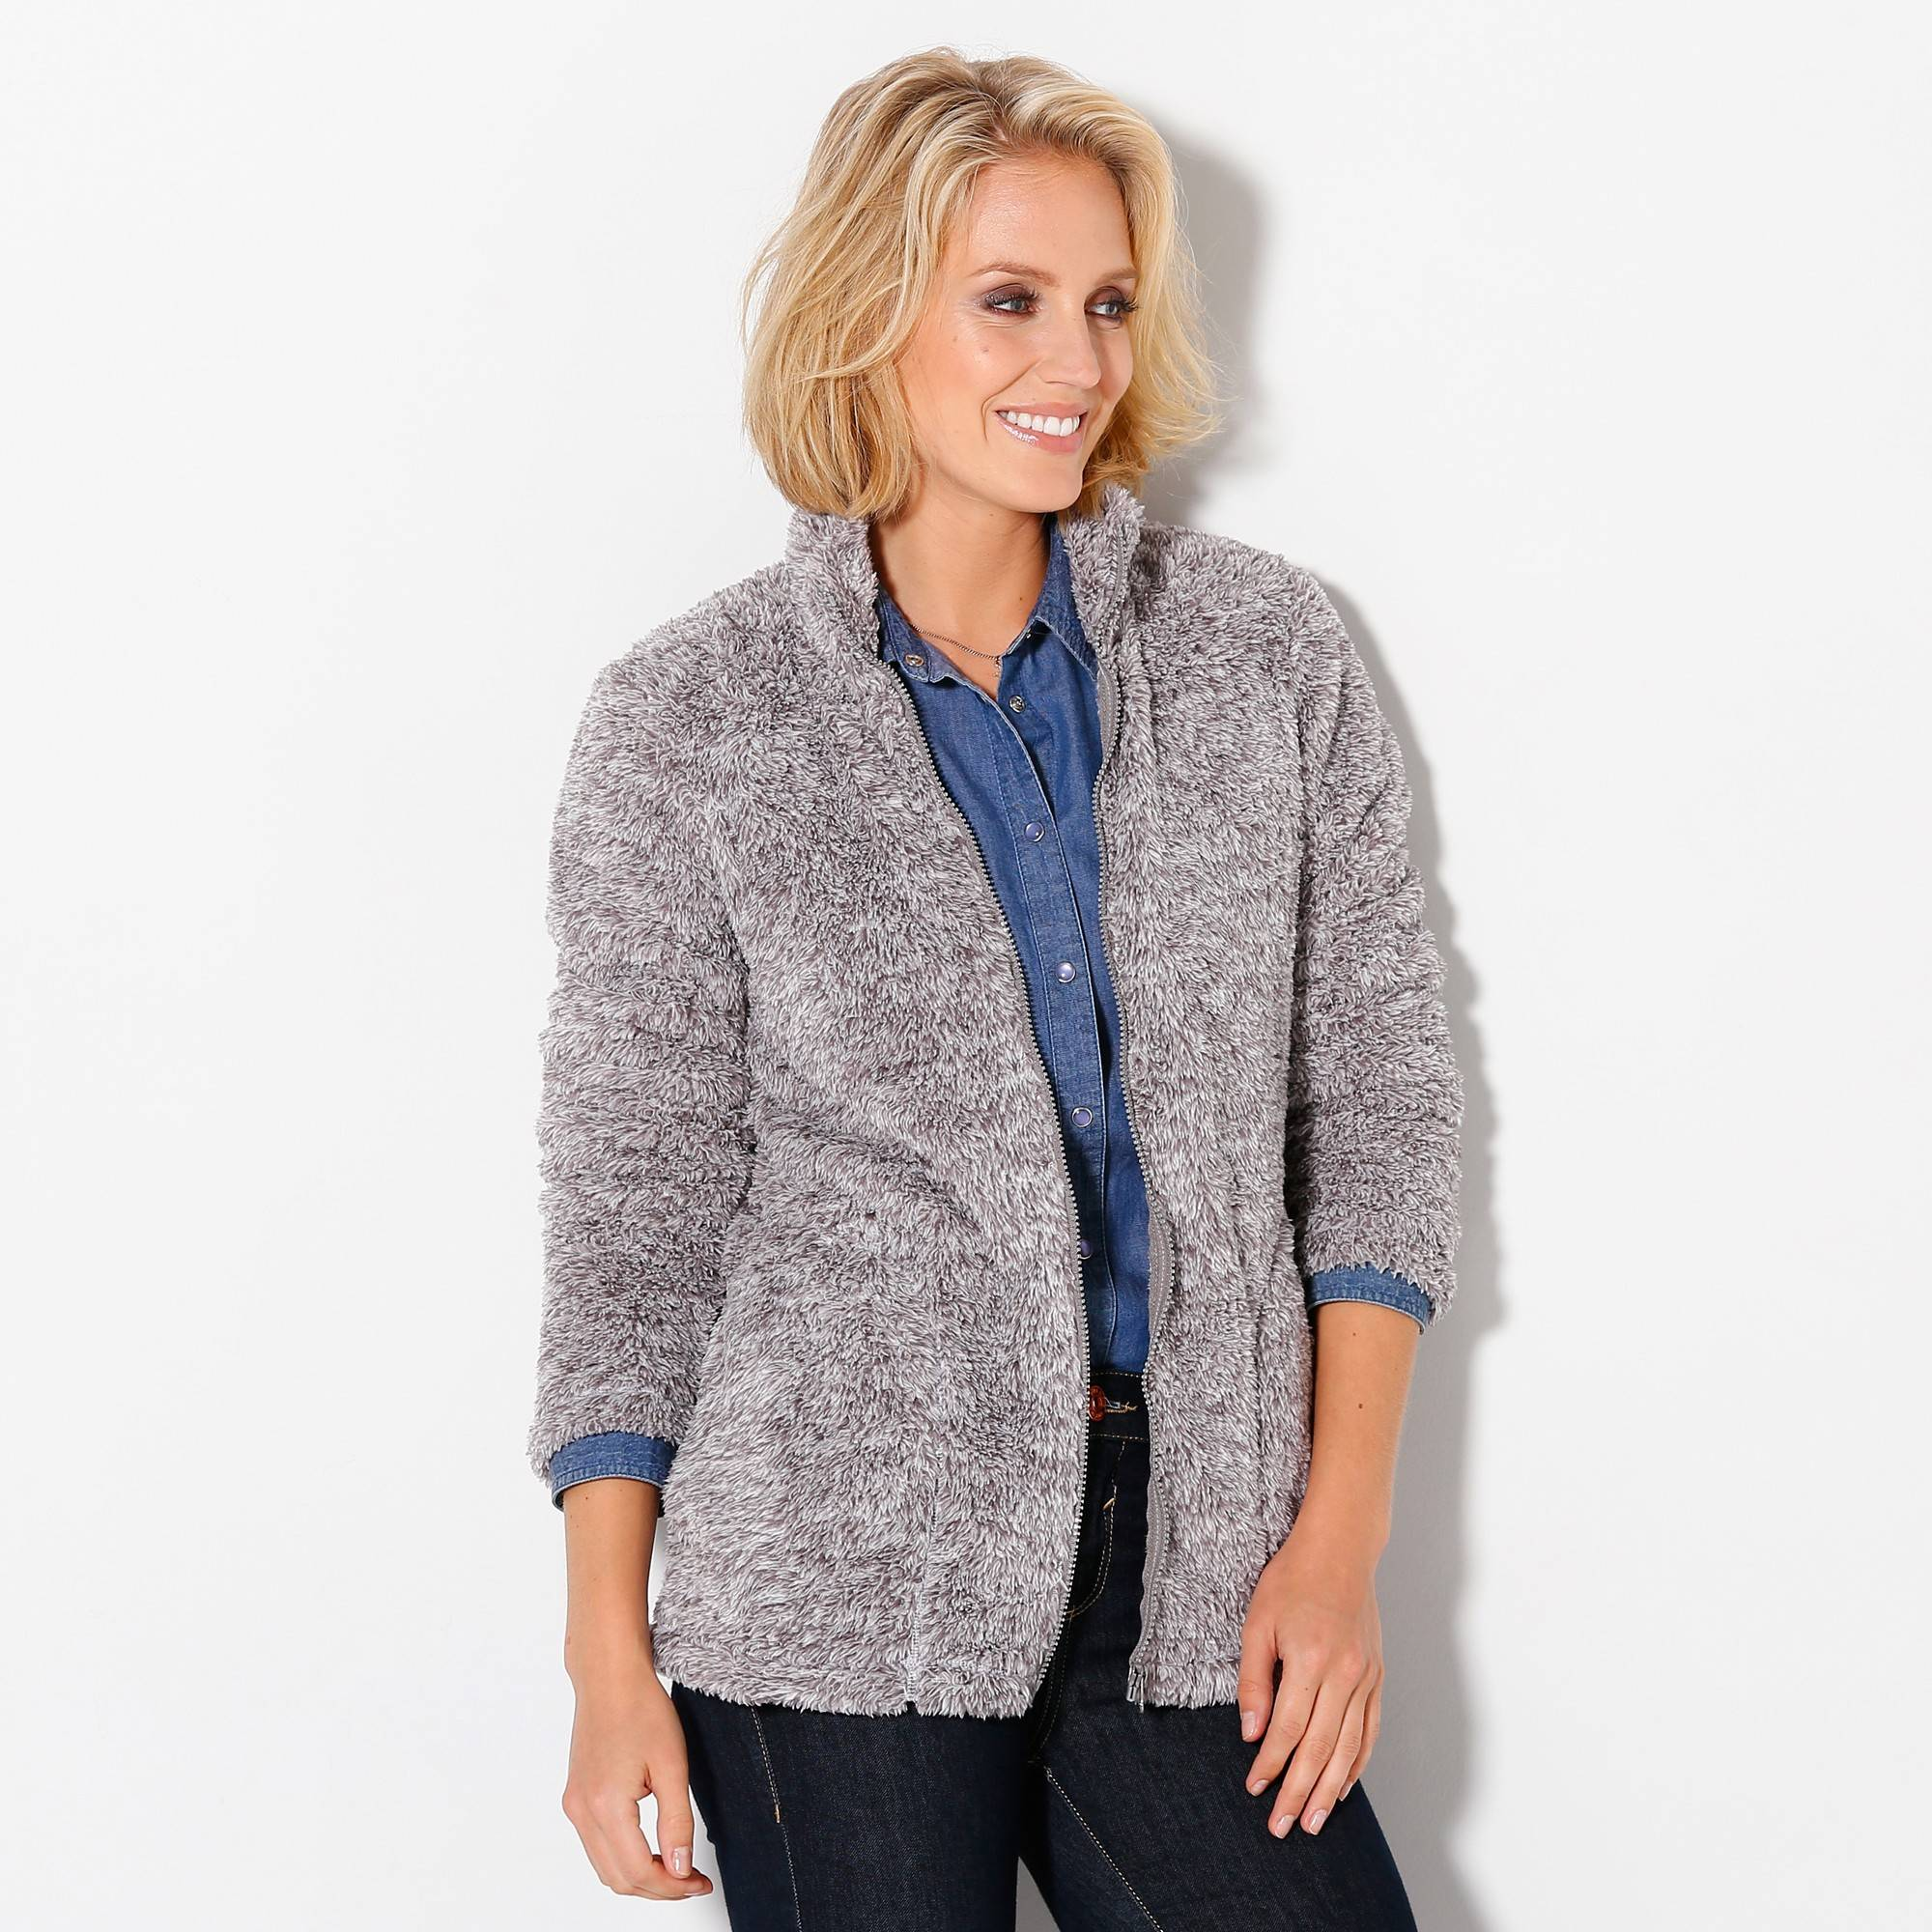 Casual Collection Veste maille peluche - Gris - Taille : 56 - Blancheporte